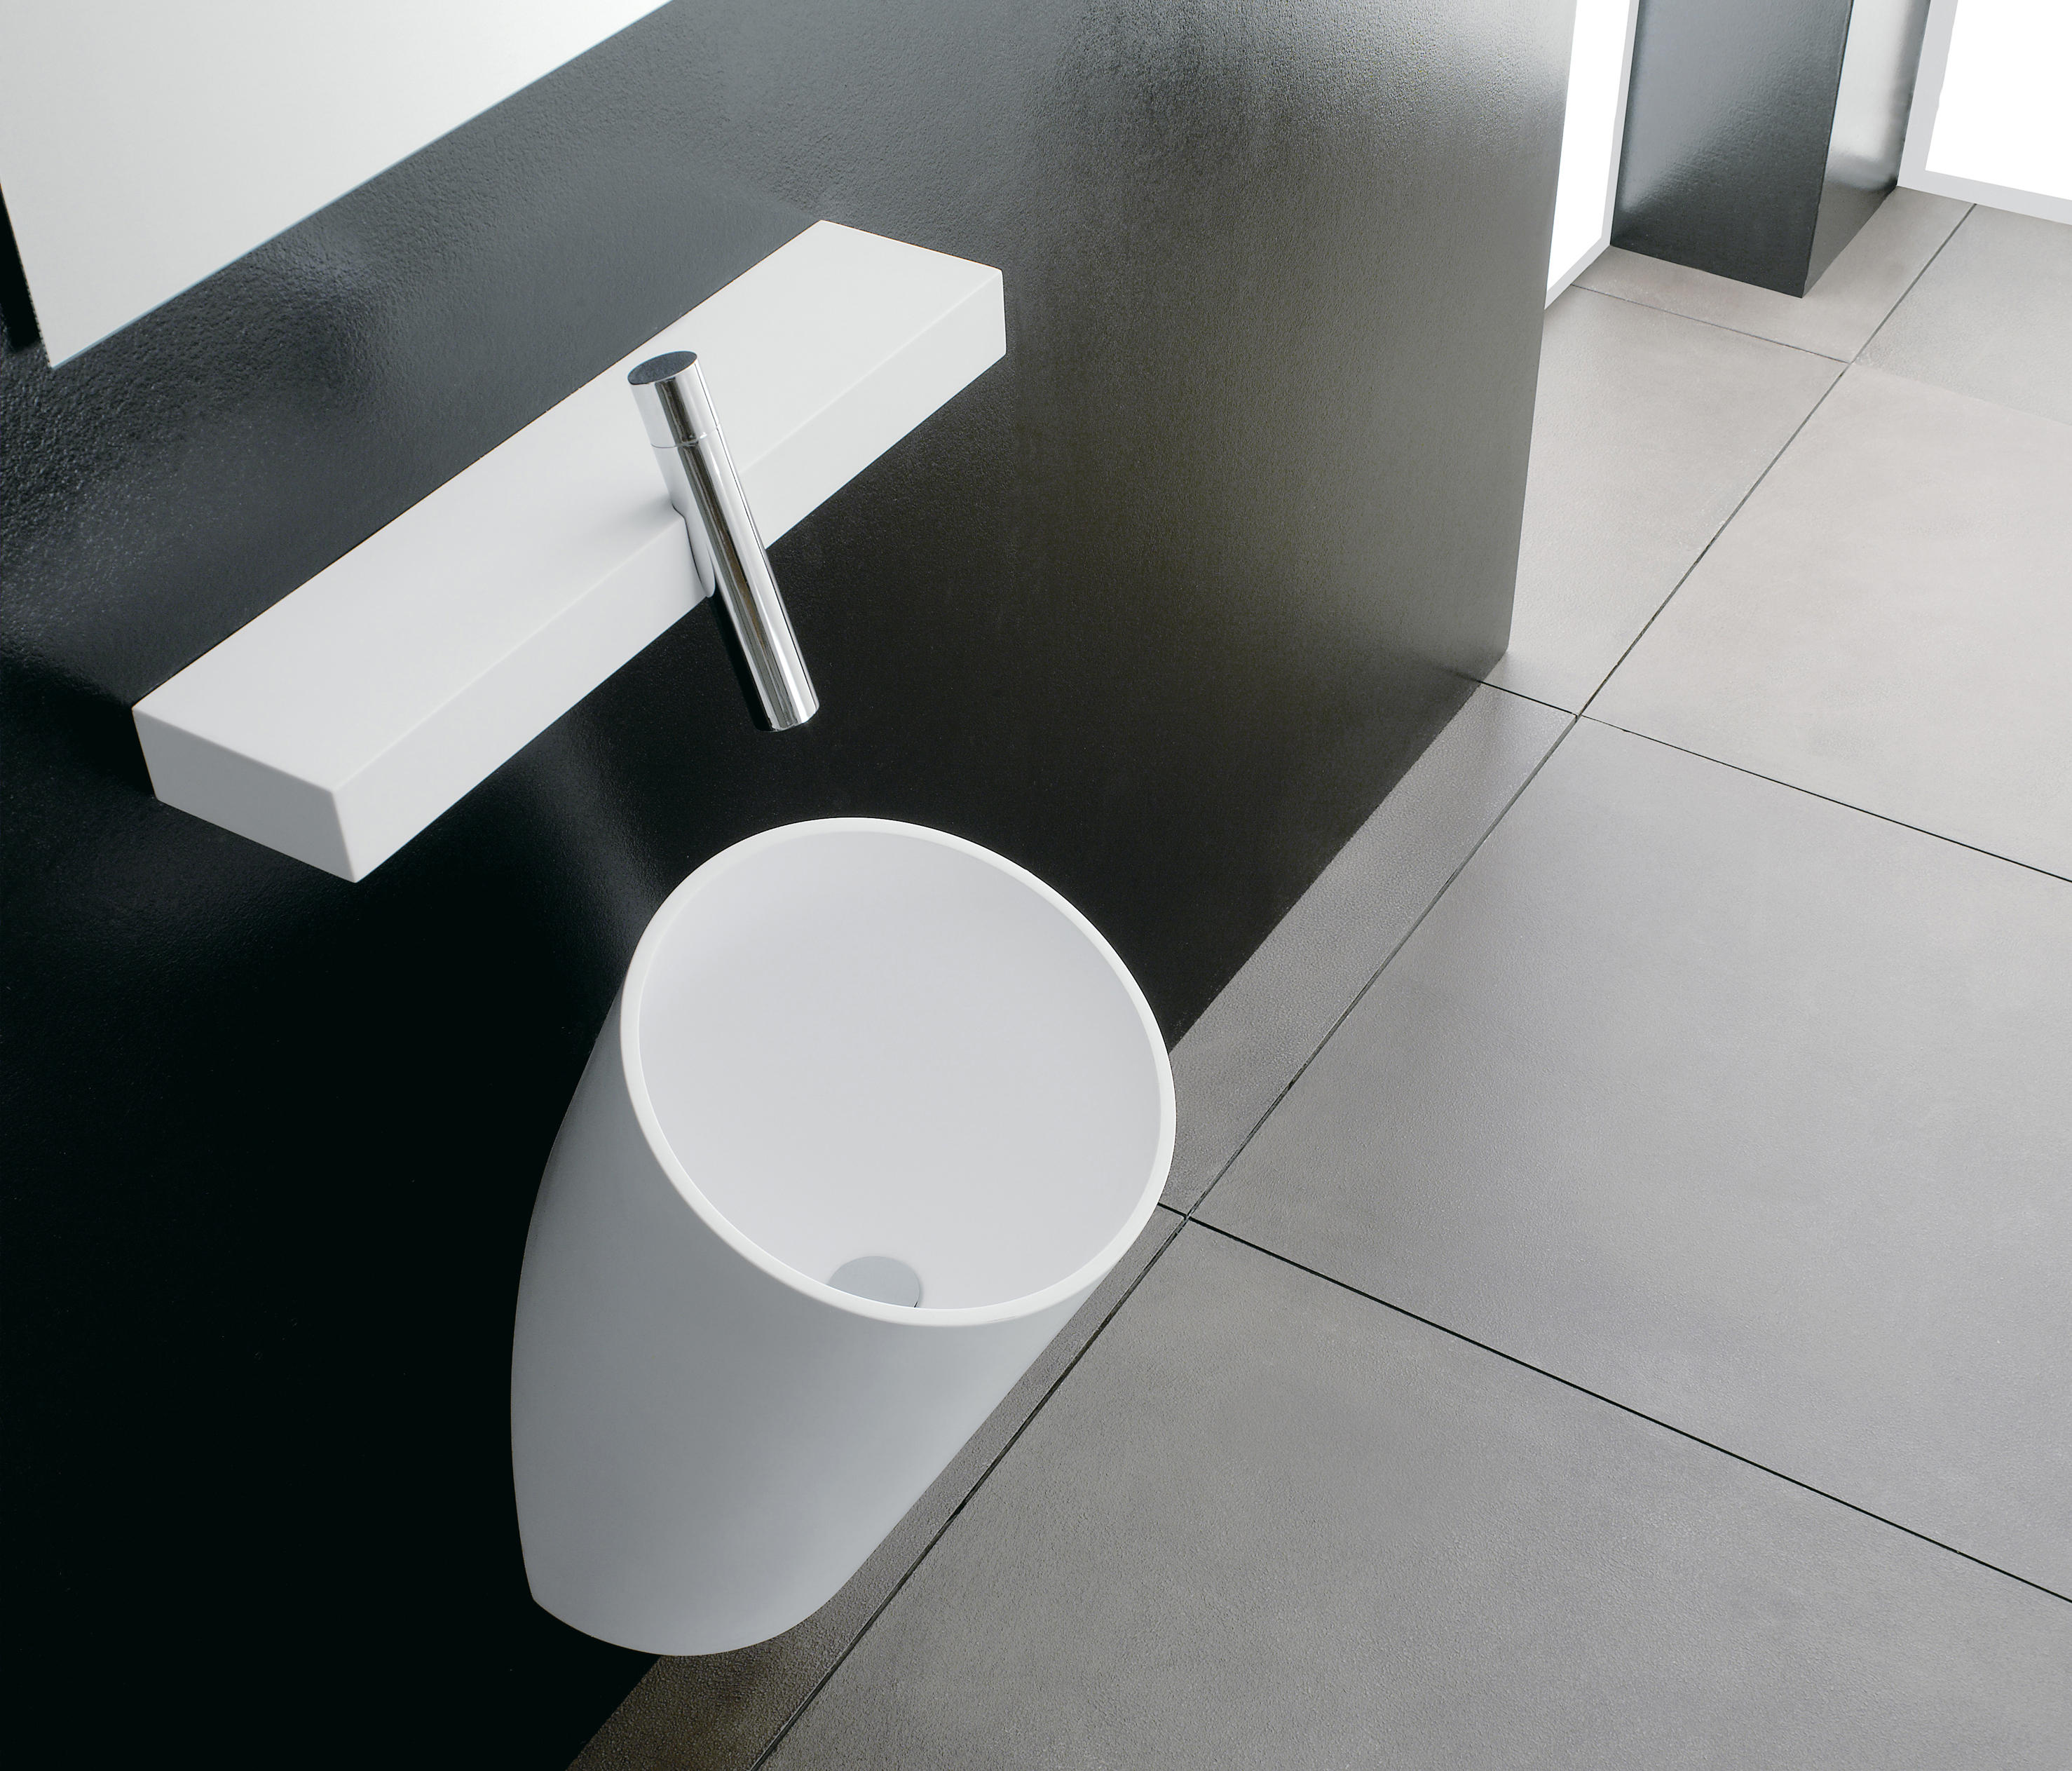 BLOK 5910 - Wash-basin taps from Rubinetterie Treemme   Architonic